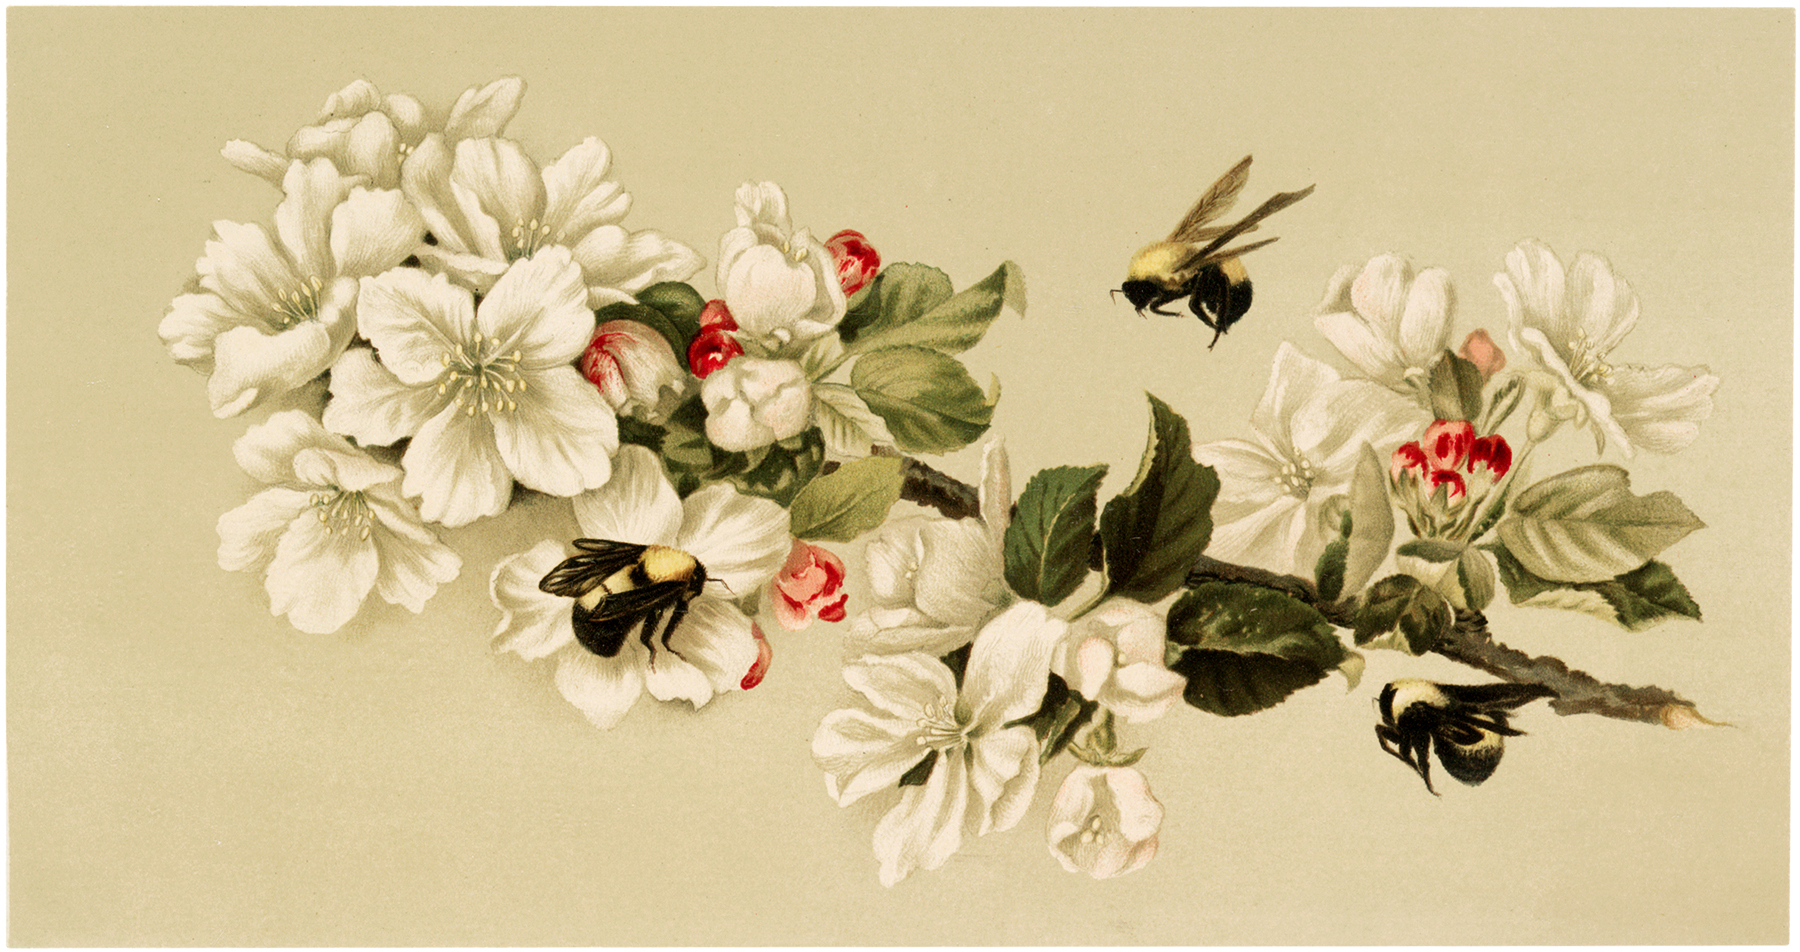 Vintage Bees Blossoms Image